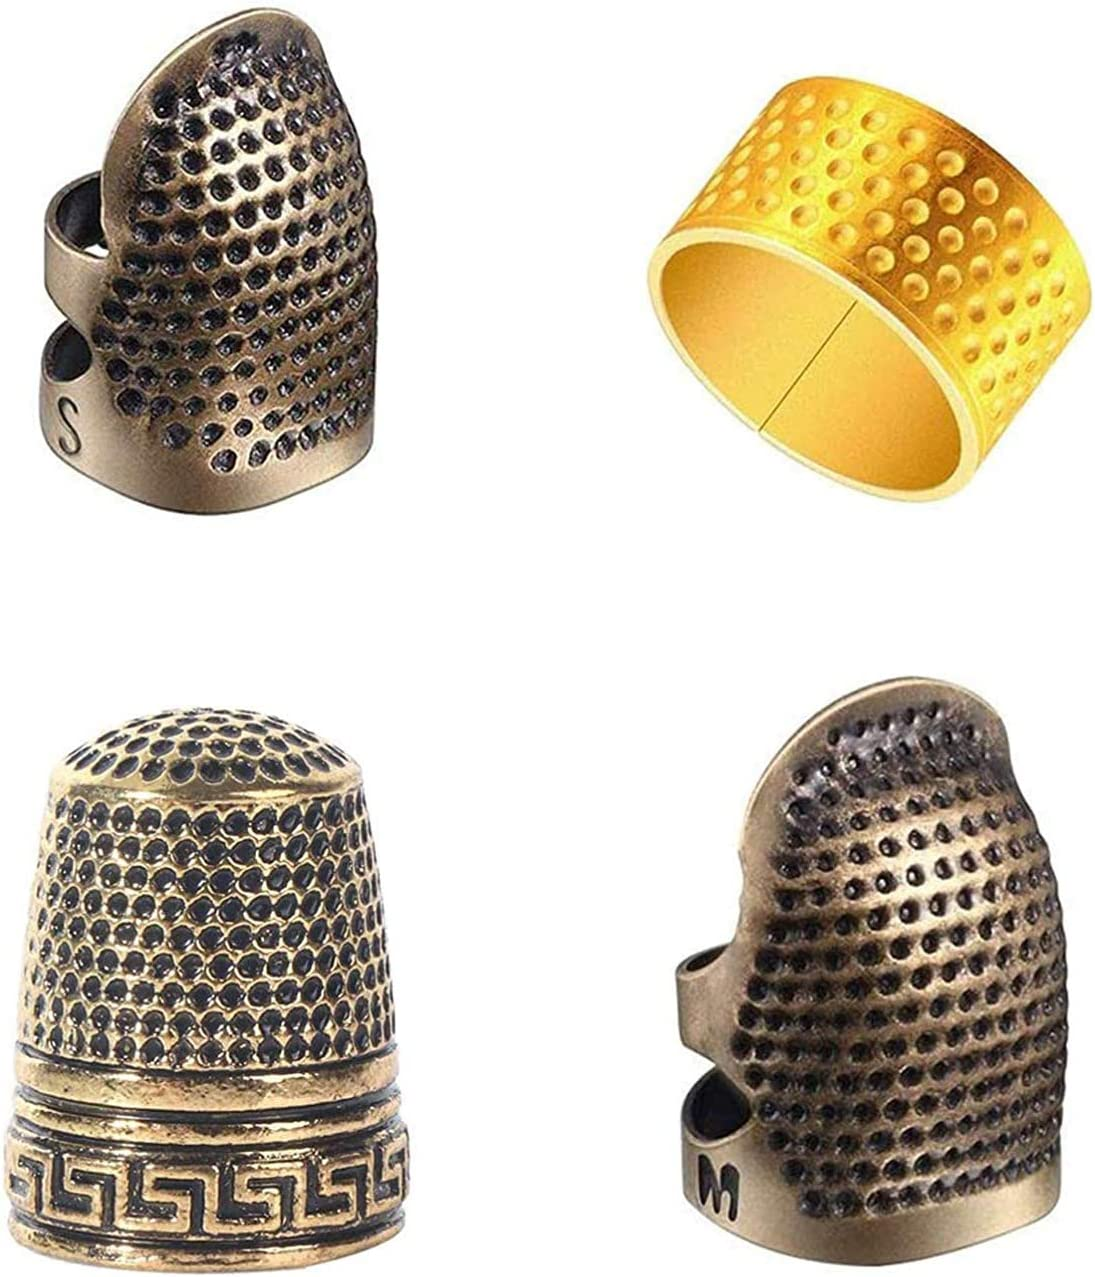 Ltjqsm 2pcs Household Sewing DIY Tools Silver Ring Thimble Finger Protector Household Craft Accessories